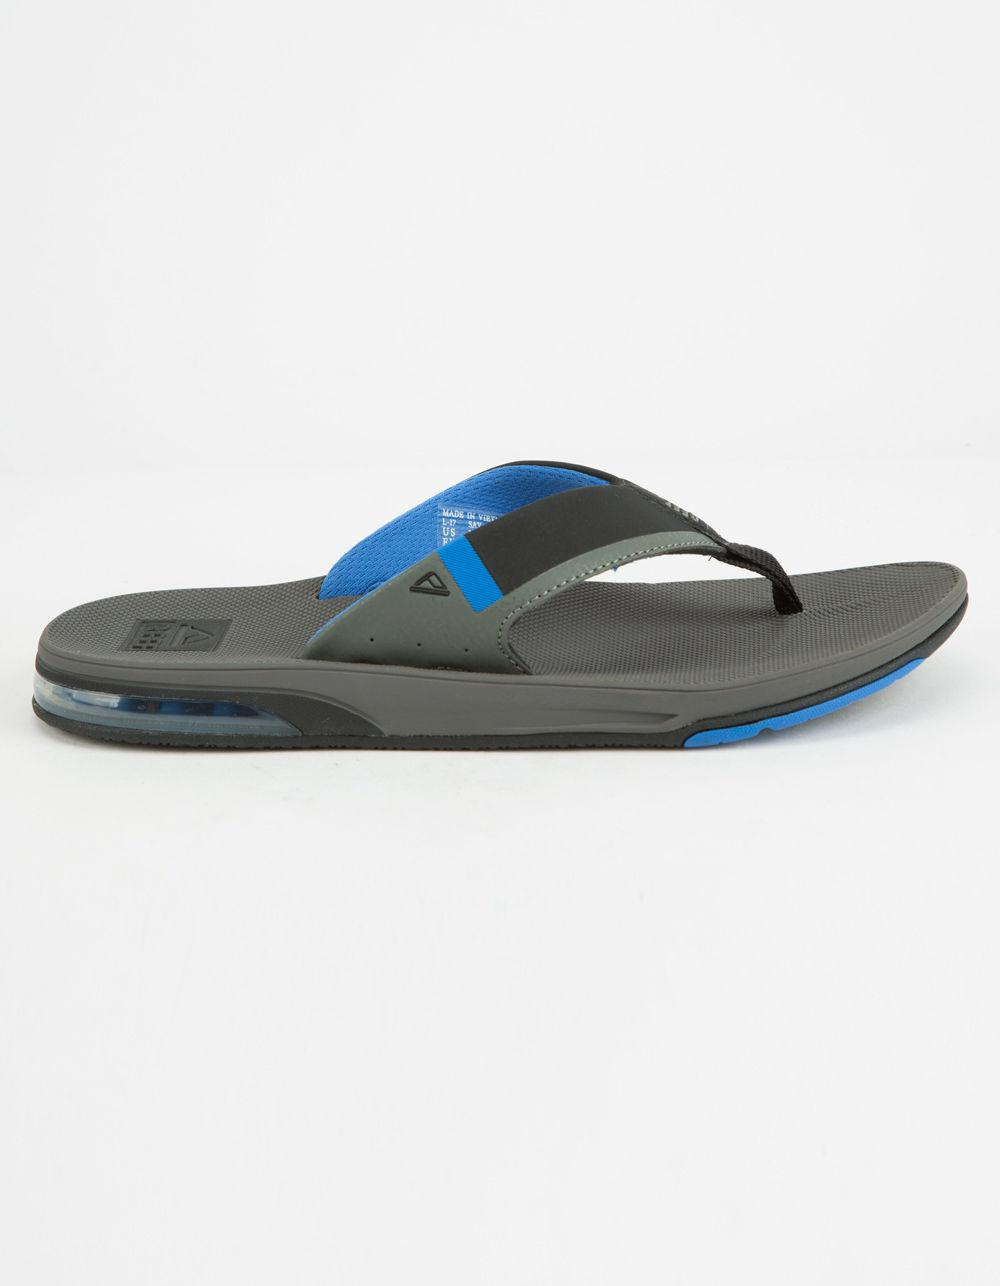 f4074553b72e Lyst - Reef Fanning Low Grey   Blue Mens Sandals in Gray for Men